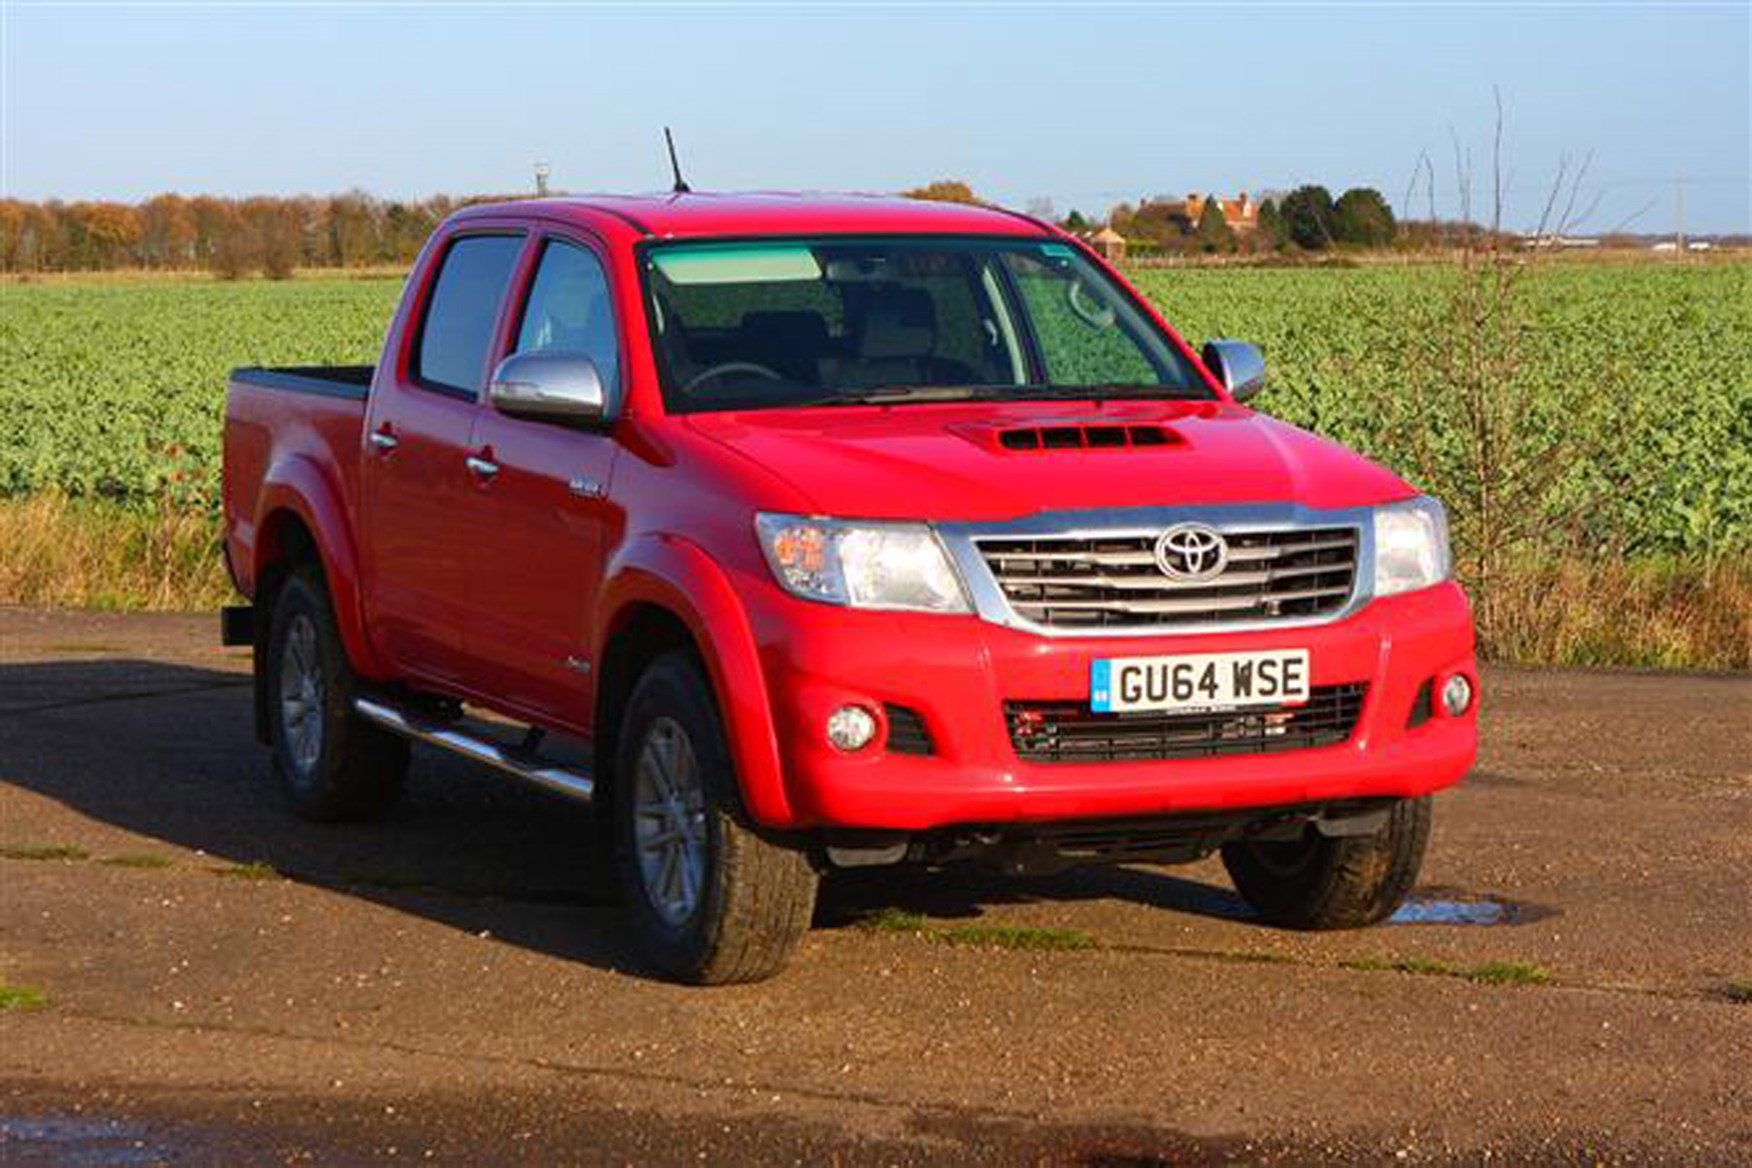 Toyota Hilux Pickup Review (2005-2016)